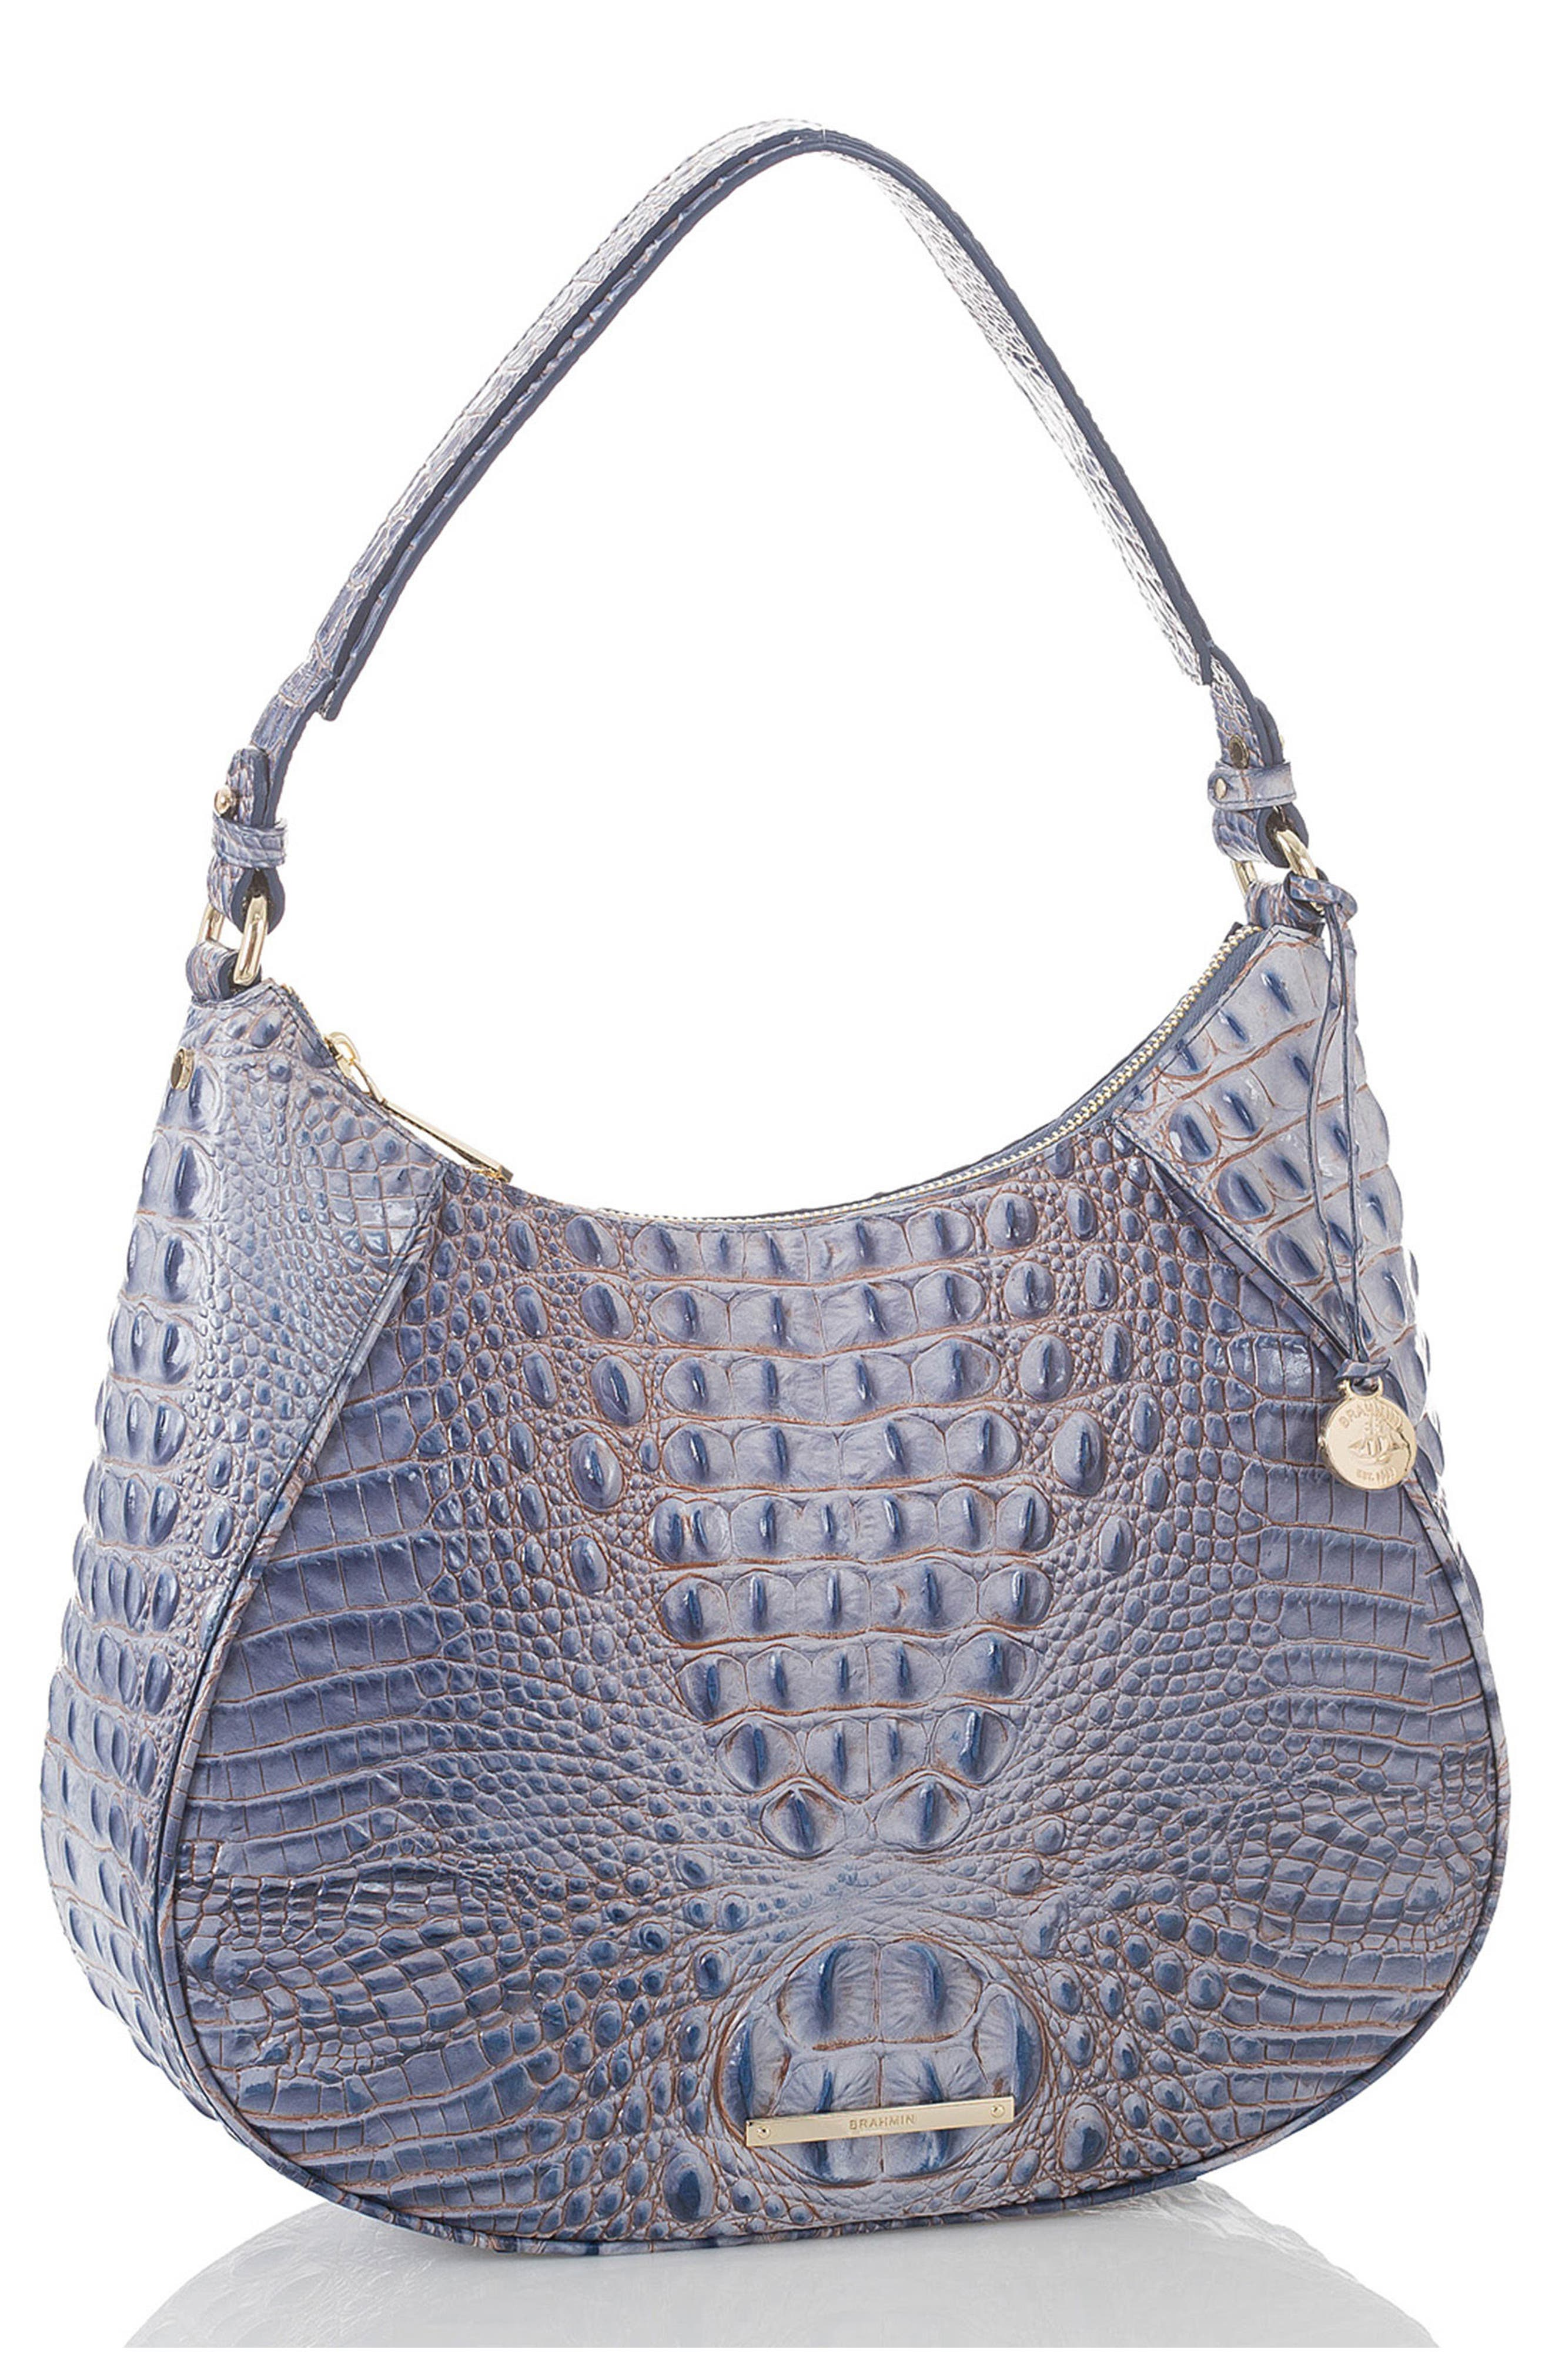 Melbourne Amira Shoulder Bag,                             Alternate thumbnail 4, color,                             Washed Indigo